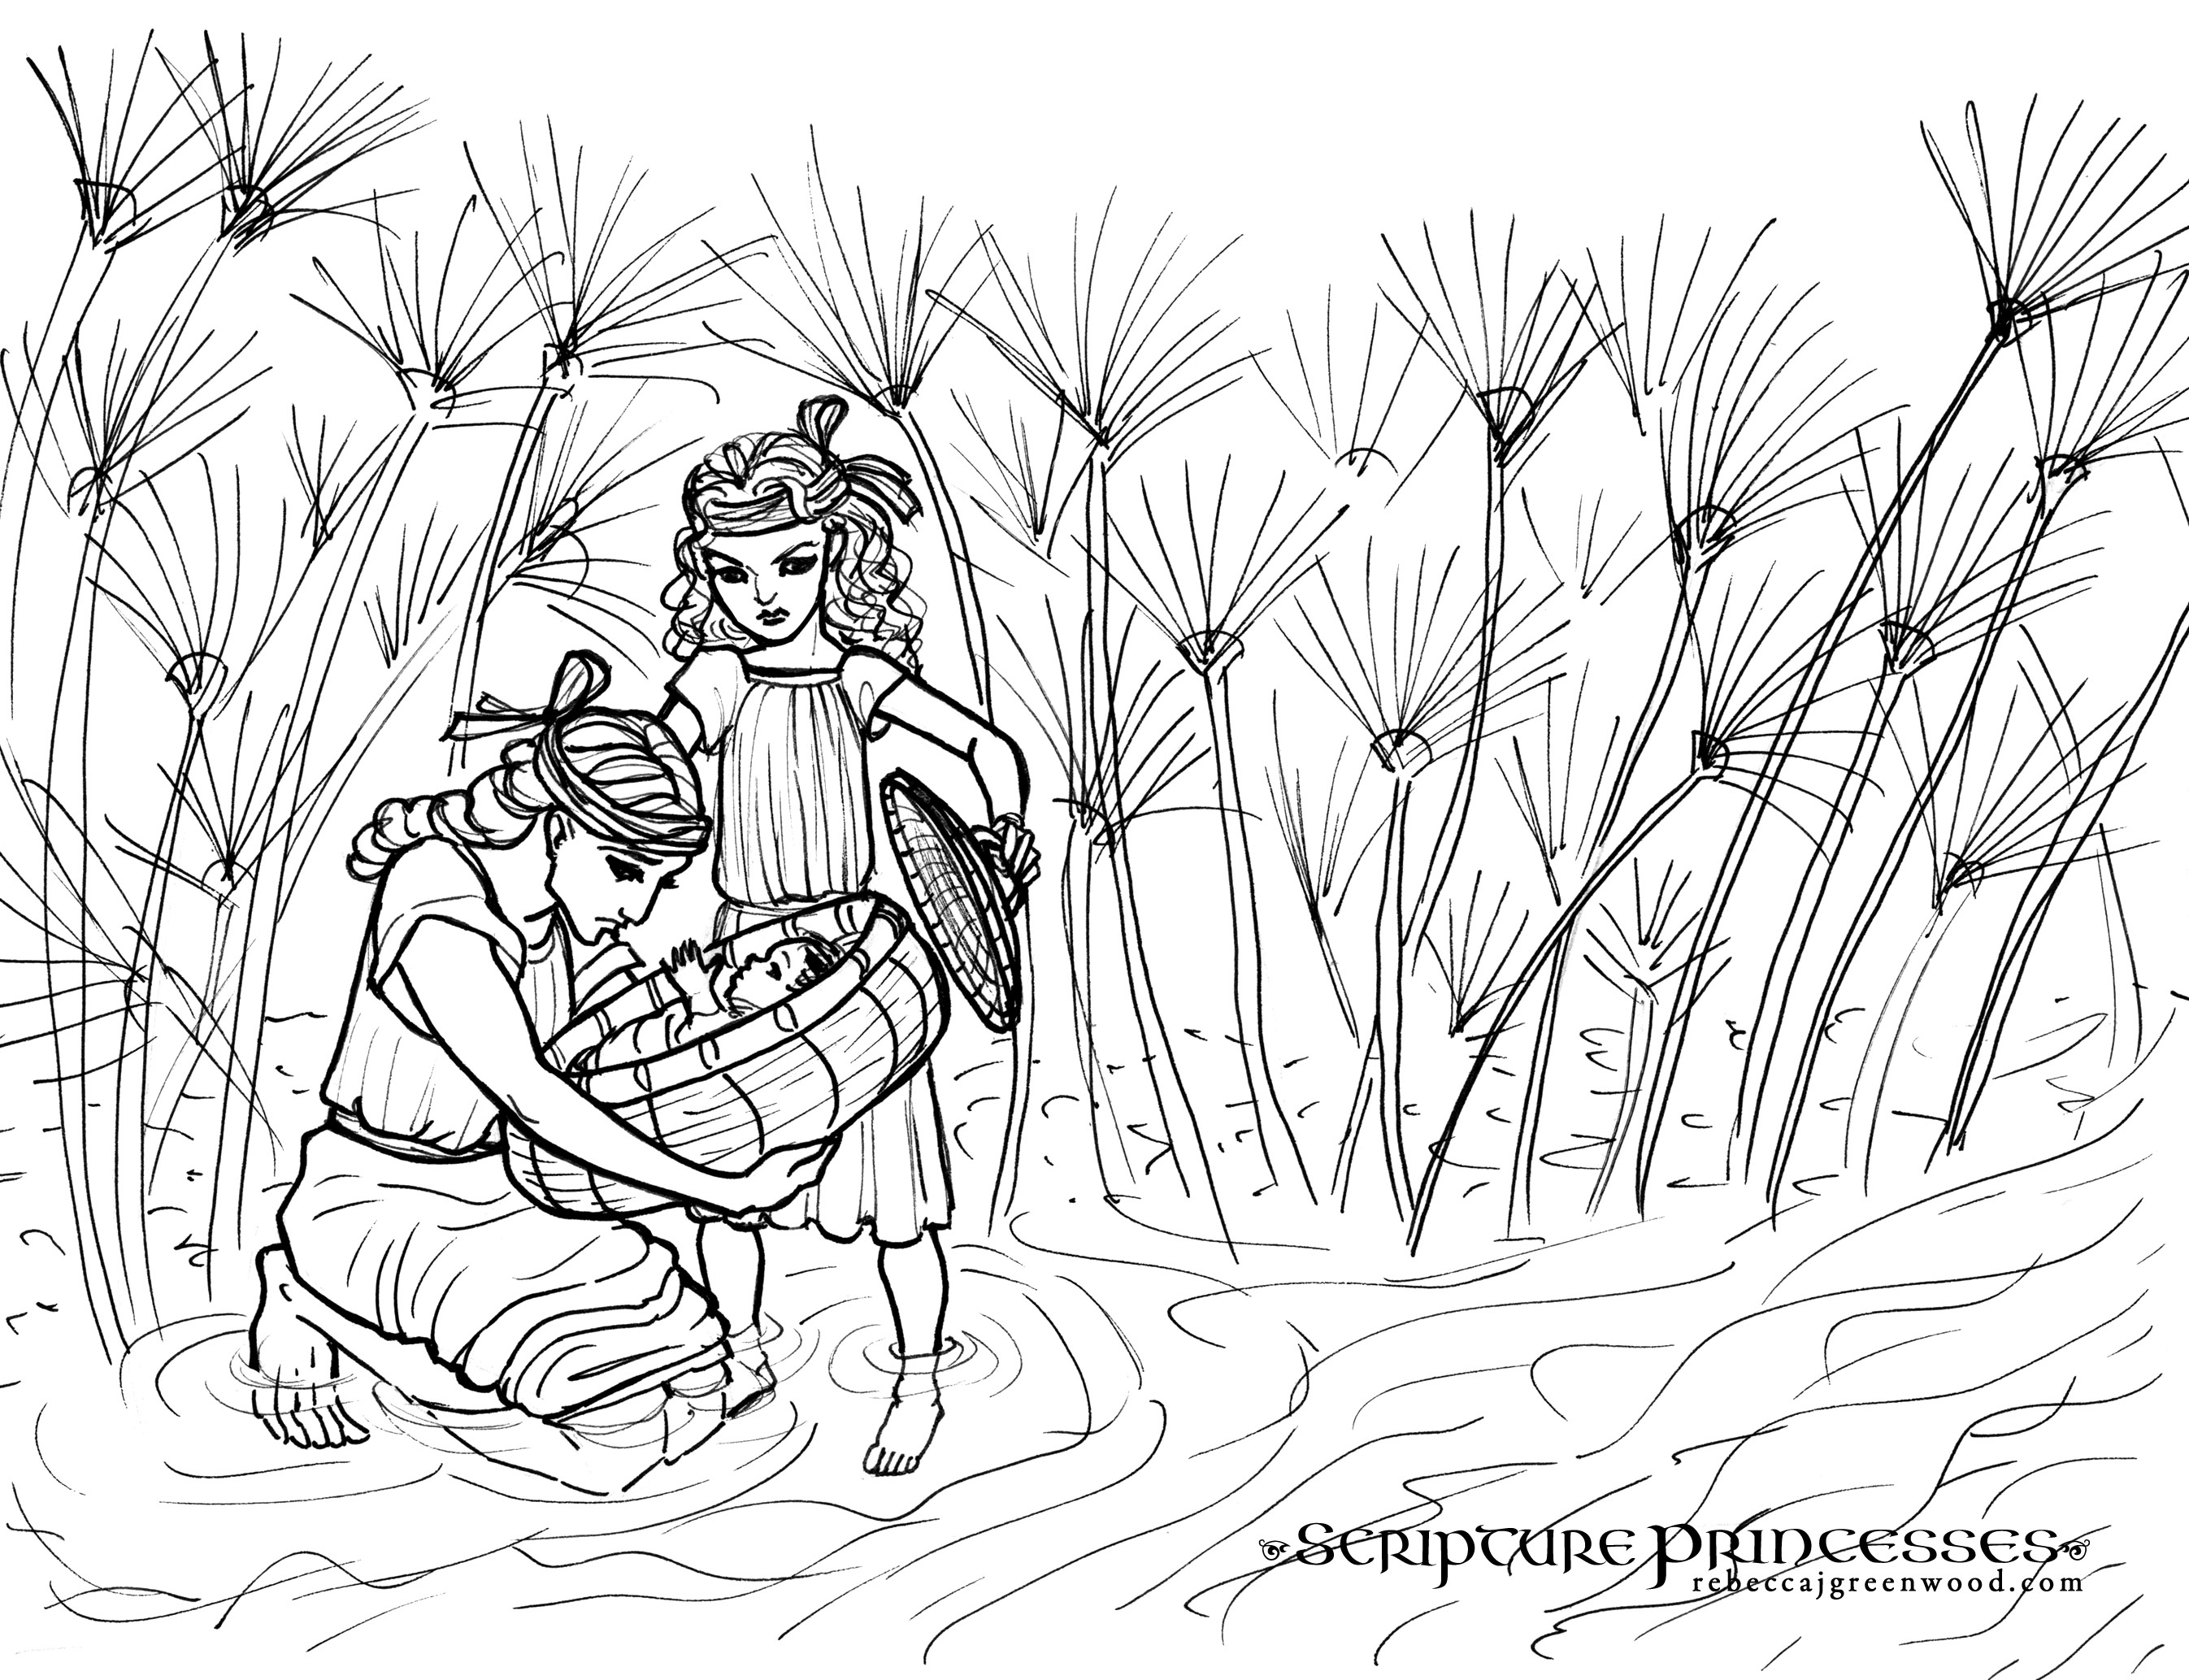 Free Coloring Page Miriam Rebecca J Greenwood